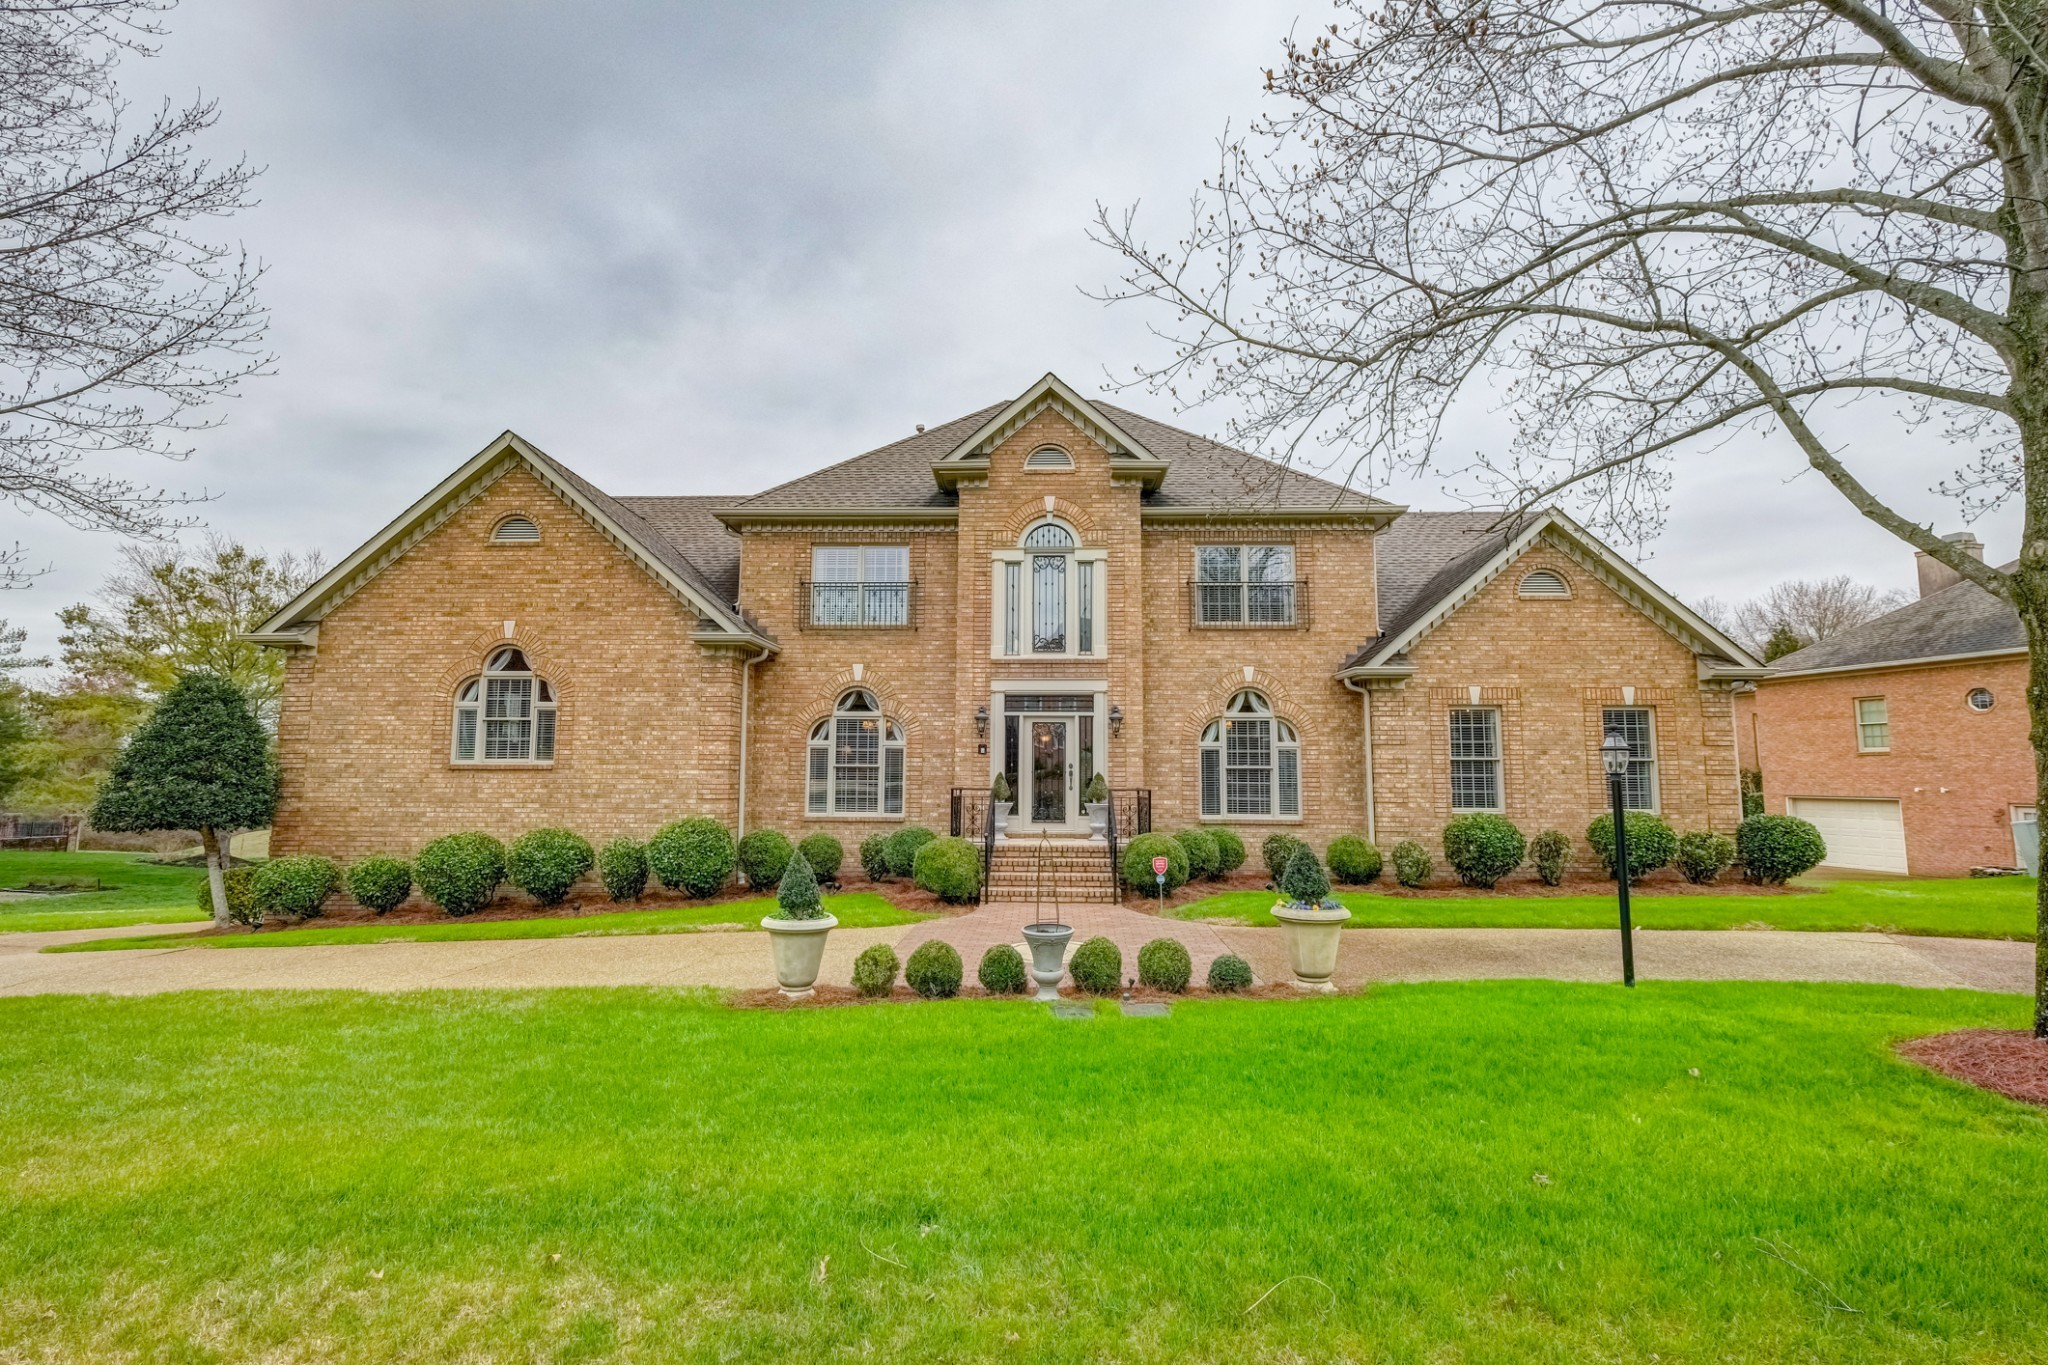 808 Hunters Hill Trce, Old Hickory, TN 37138 - Old Hickory, TN real estate listing